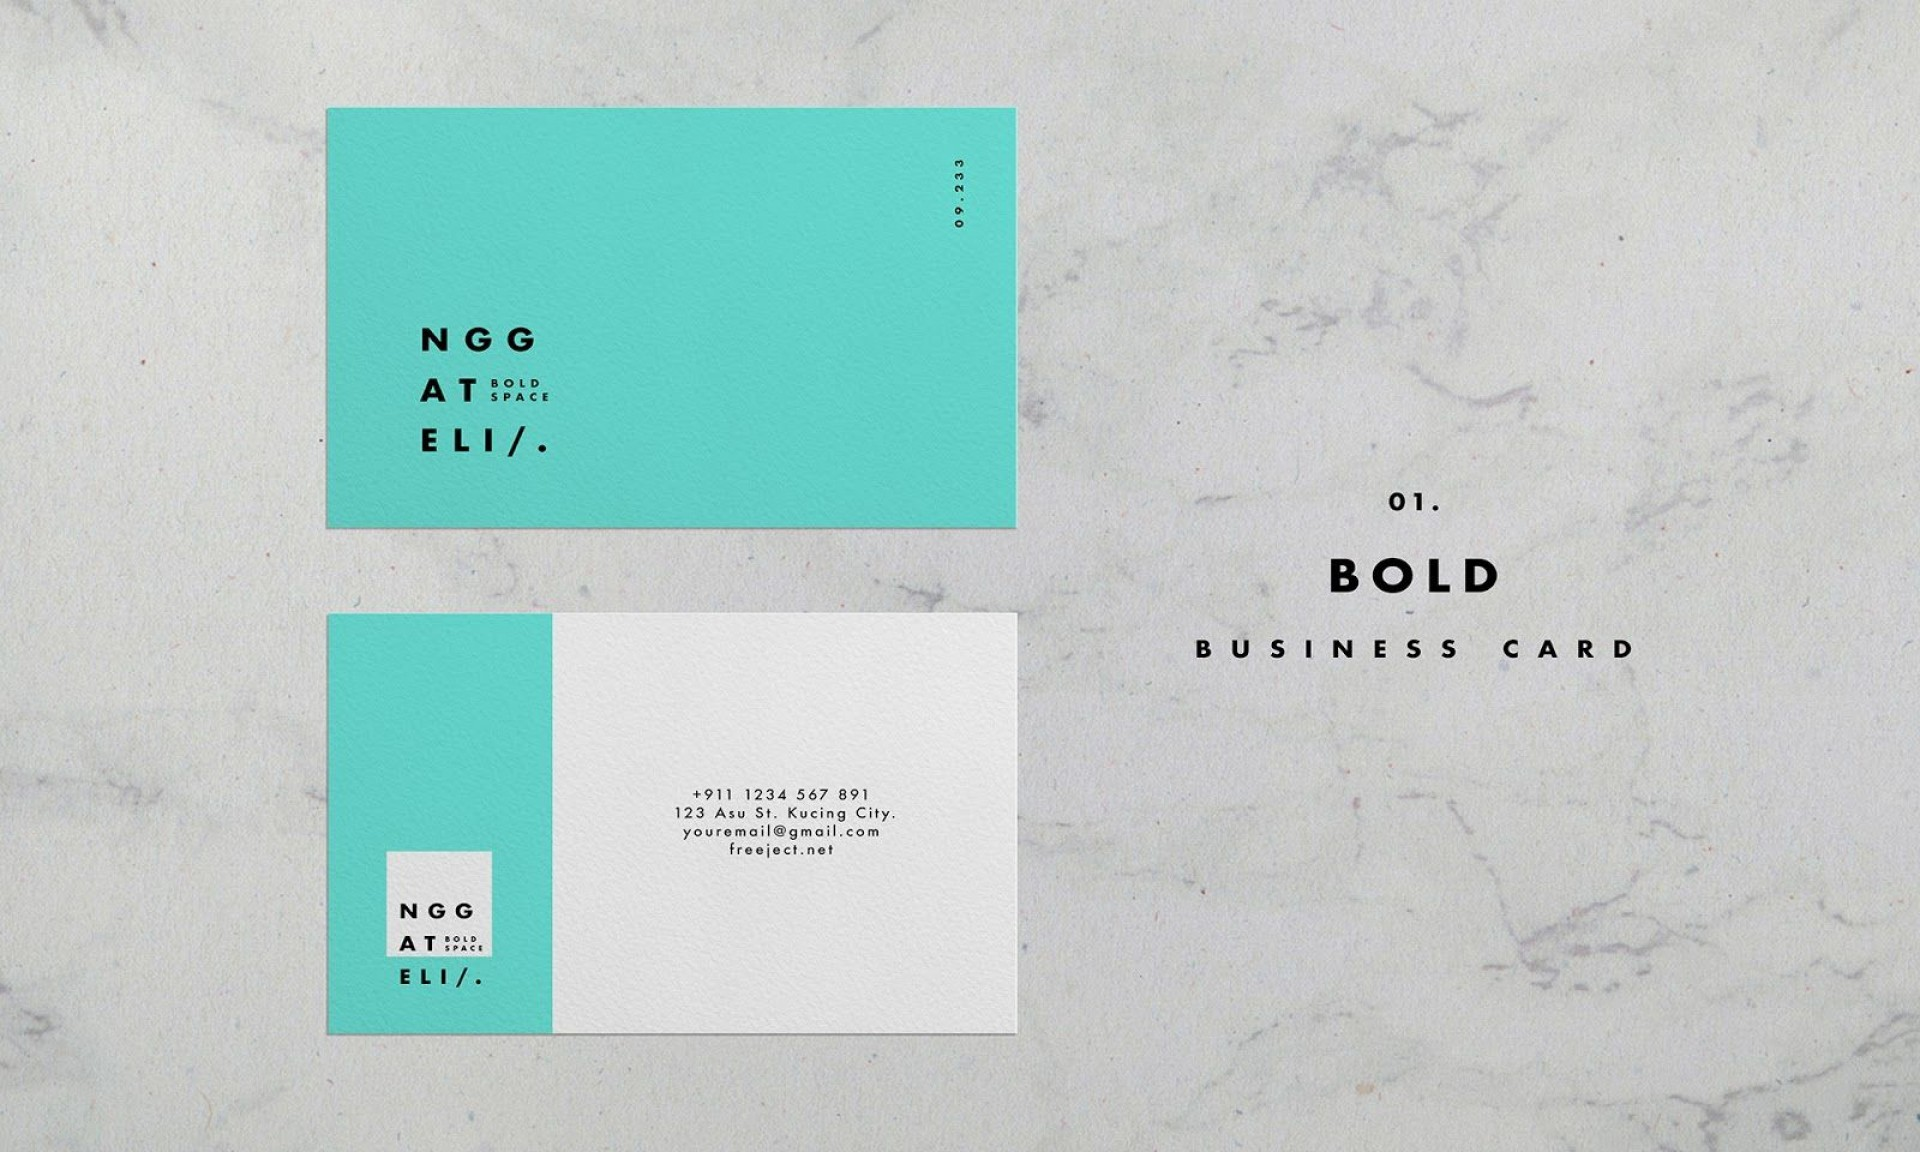 005 Stupendou Simple Visiting Card Design Psd Inspiration  Minimalist Busines Template Free File Download In Photoshop1920